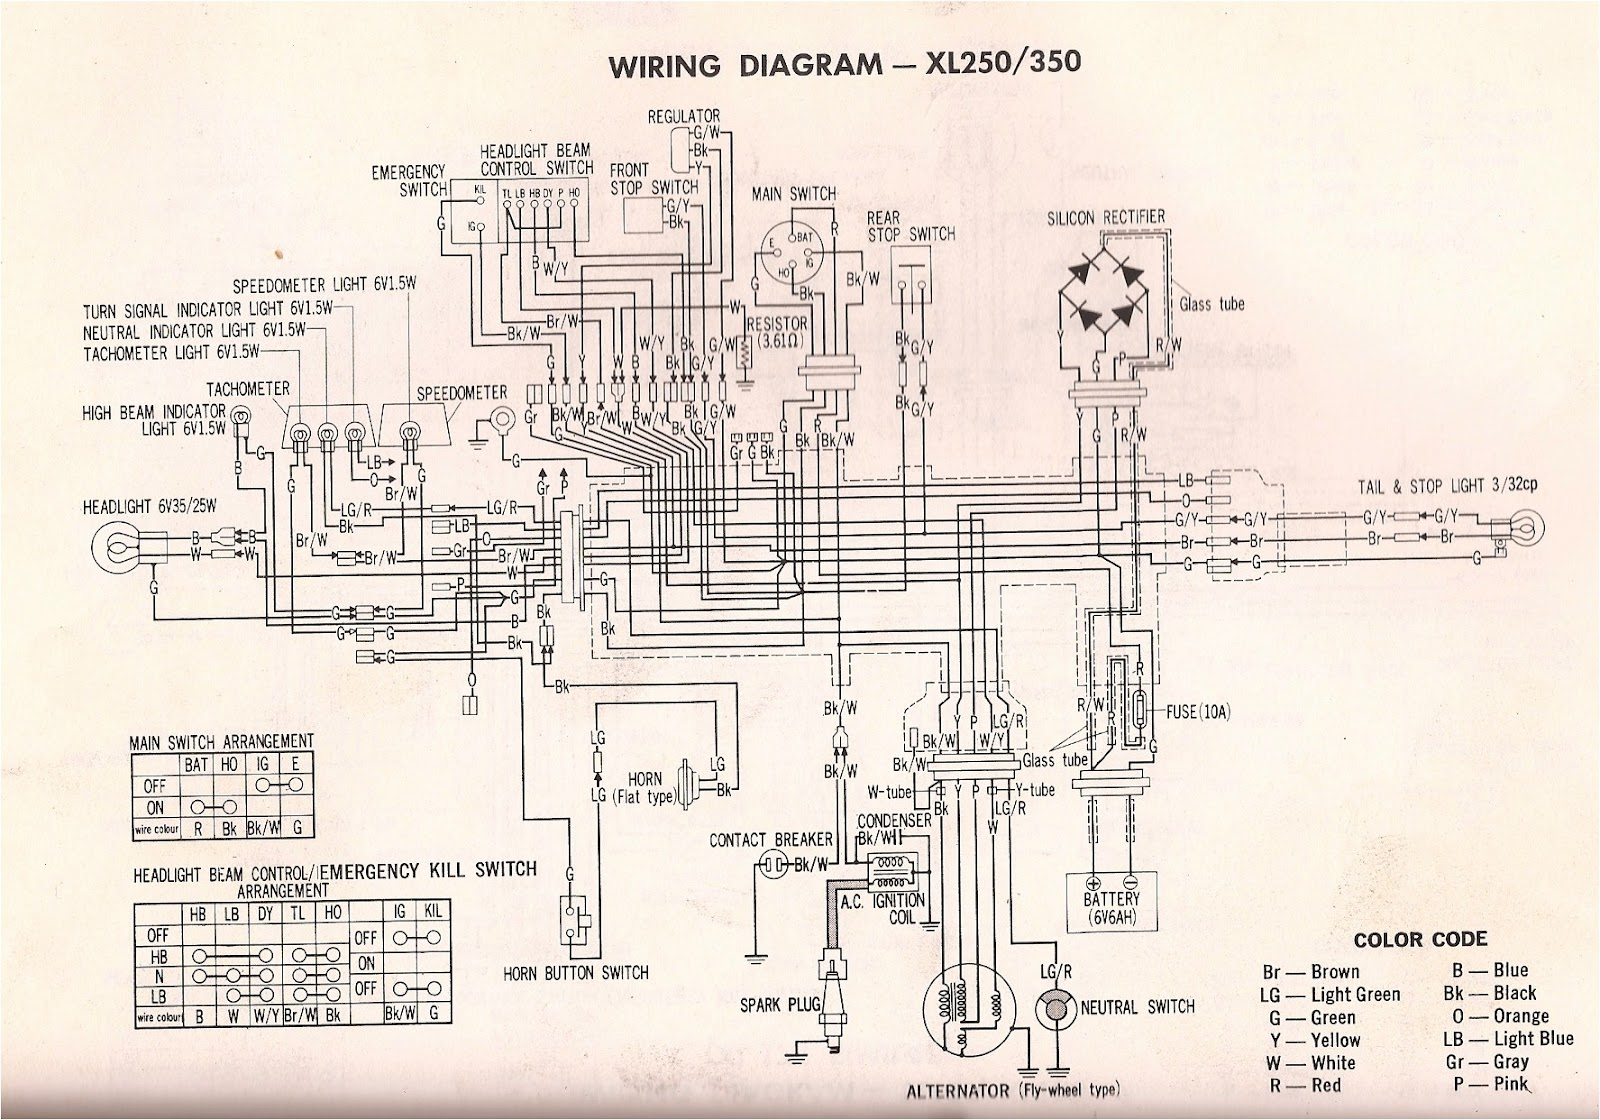 Wiring Diagram Honda K 5 Z50 Atc 70 Xl 250 Simple Rh David Huggett Co Uk 49cc Pocket Bike